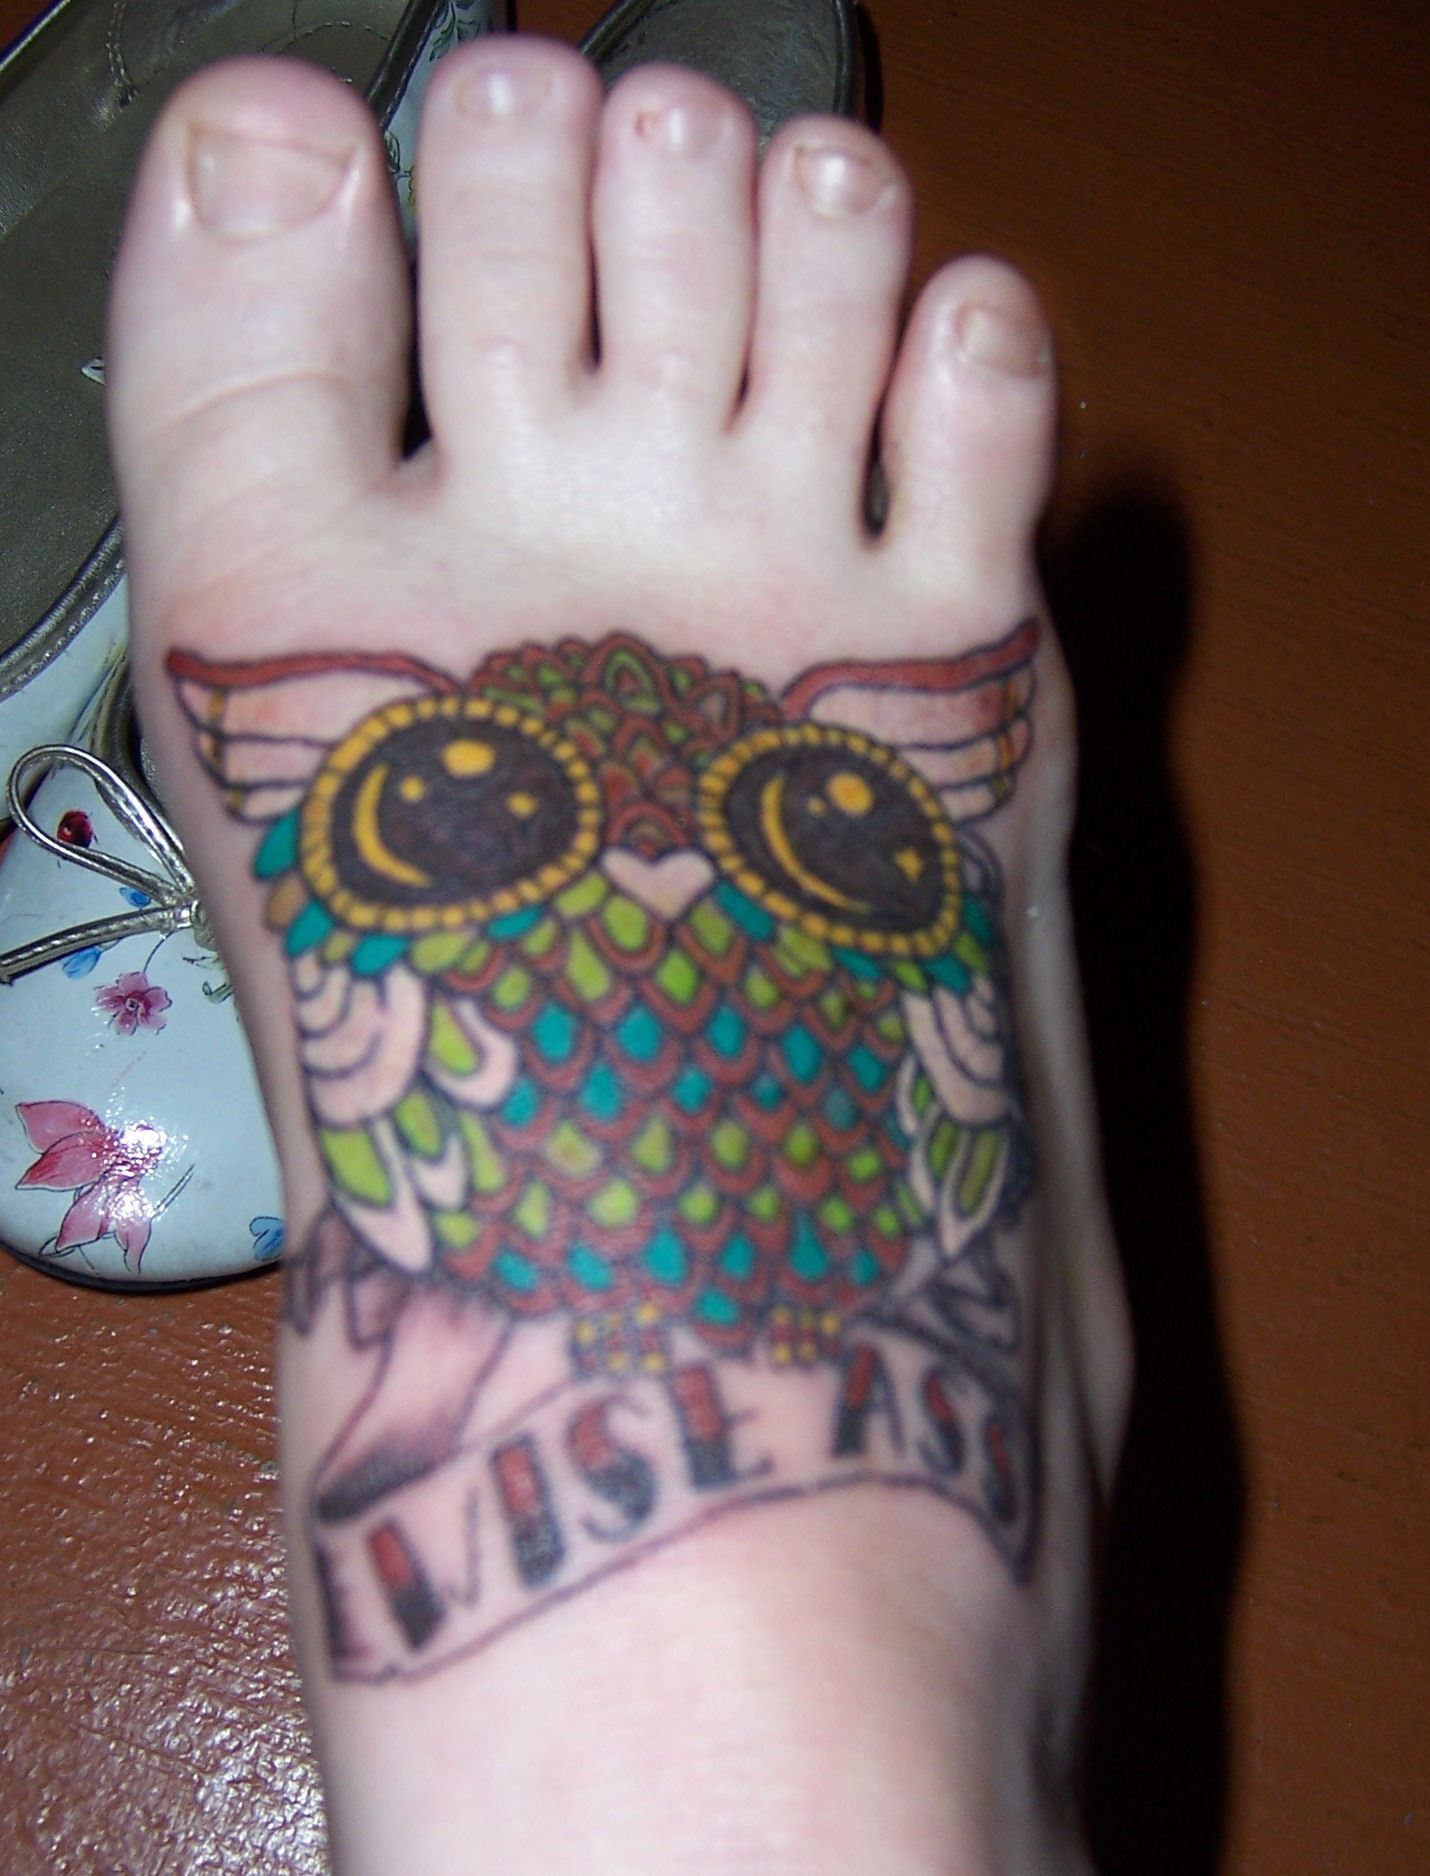 My new tattoo tattoos photo 10838355 fanpop for What to use on new tattoos